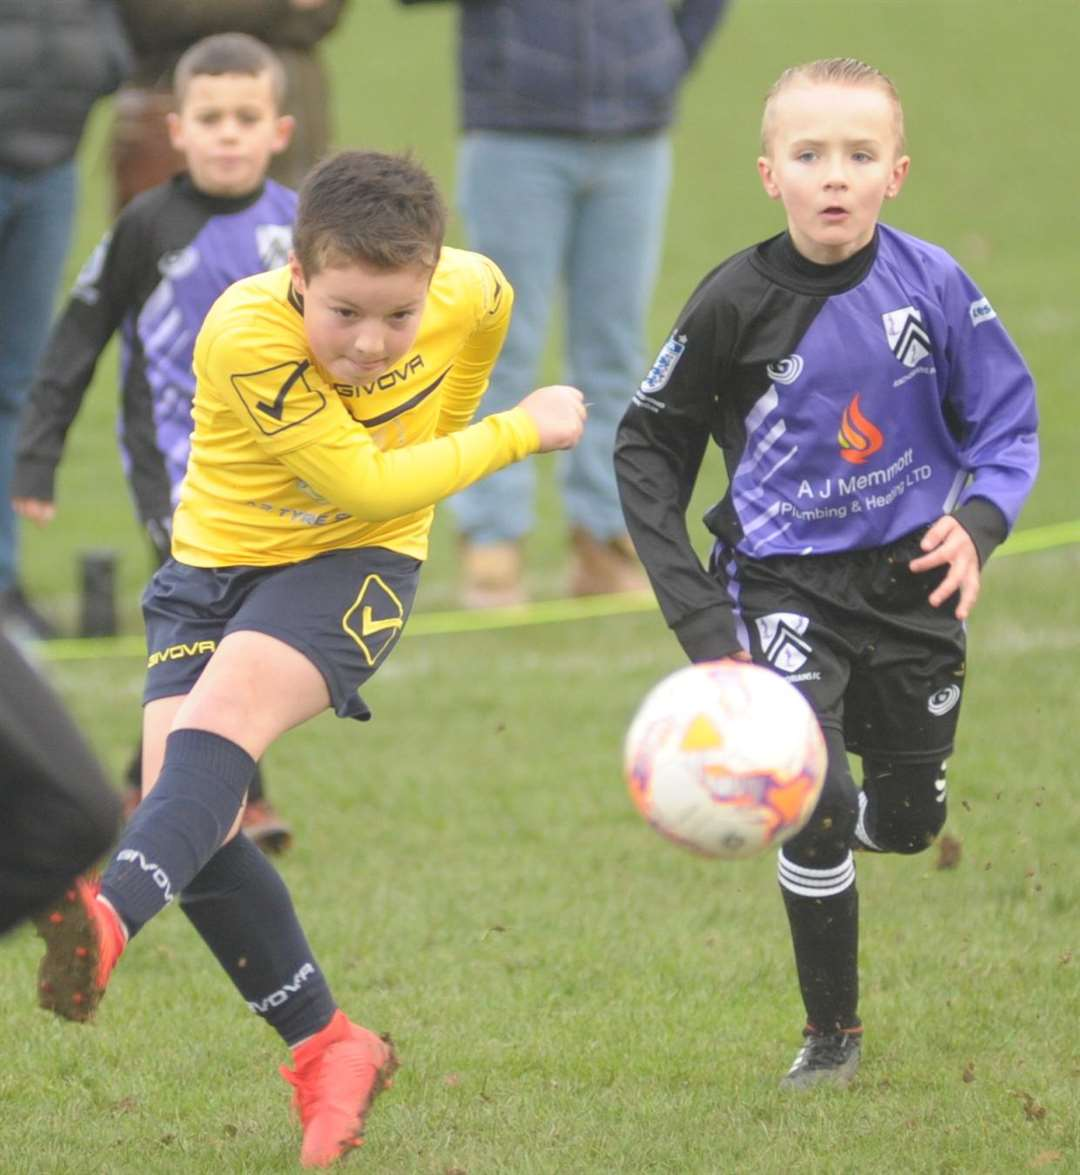 Sheerness East Youth under-9s on the attack against Anchorians Jaguars Picture: Steve Crispe